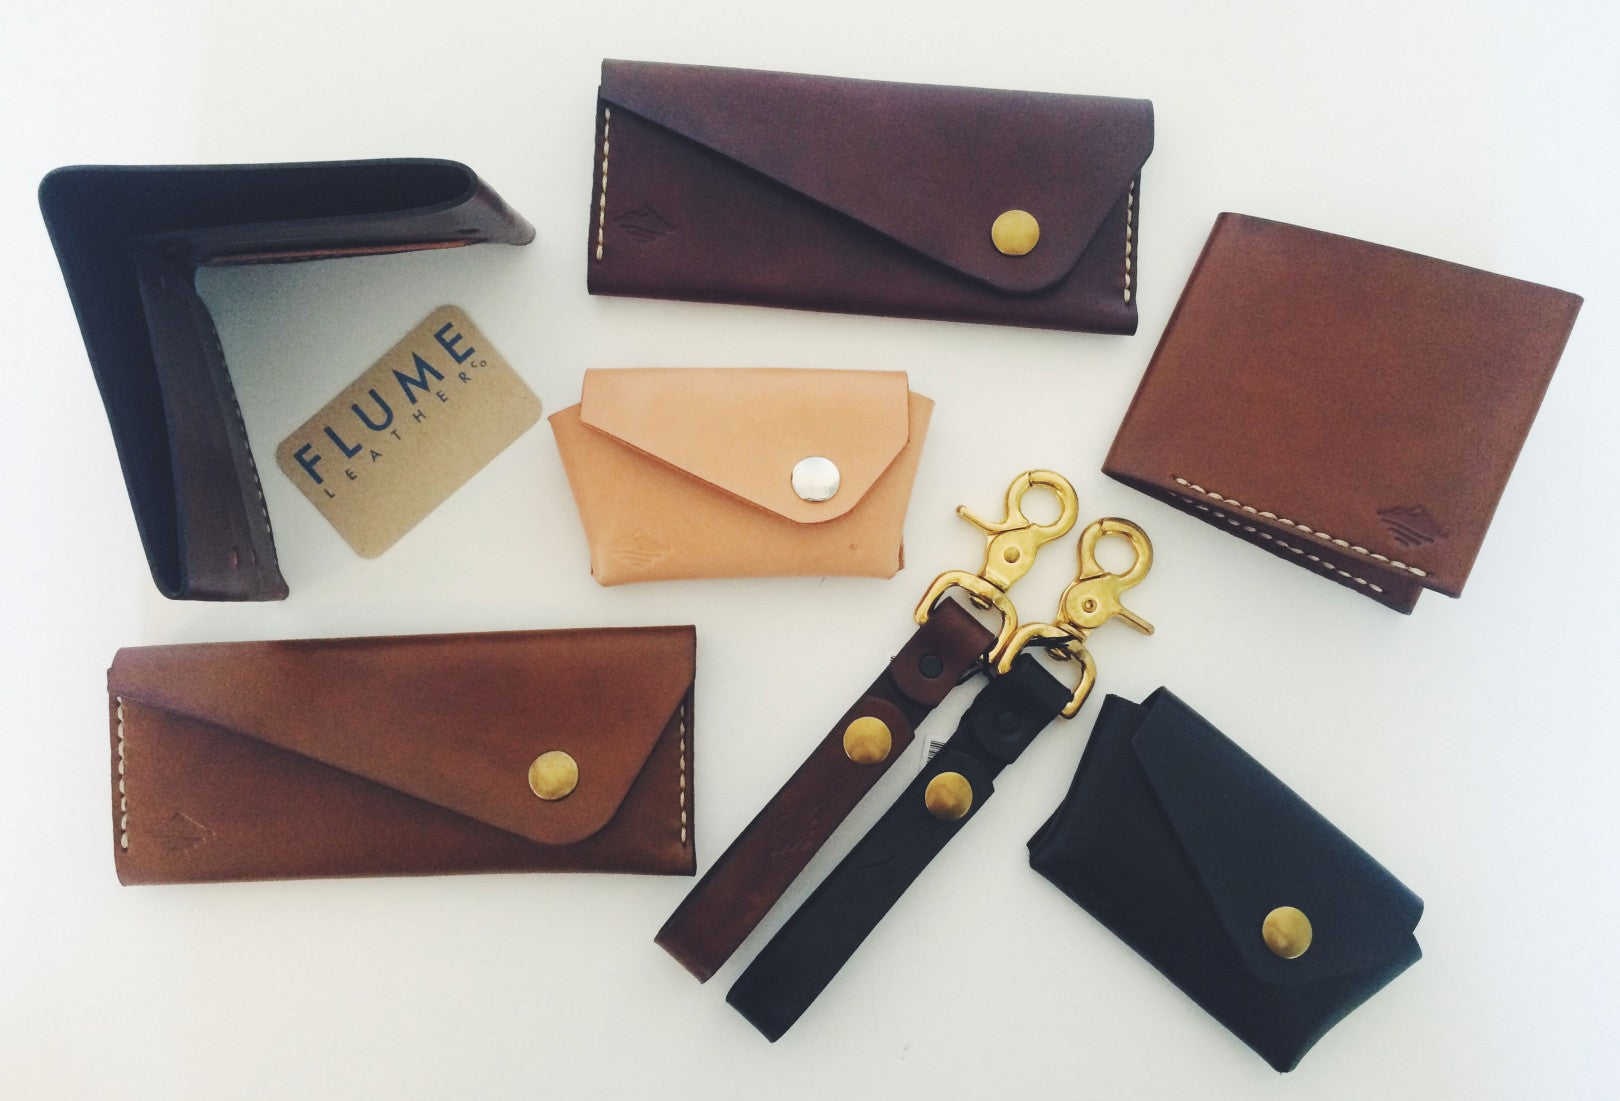 Flume leather co